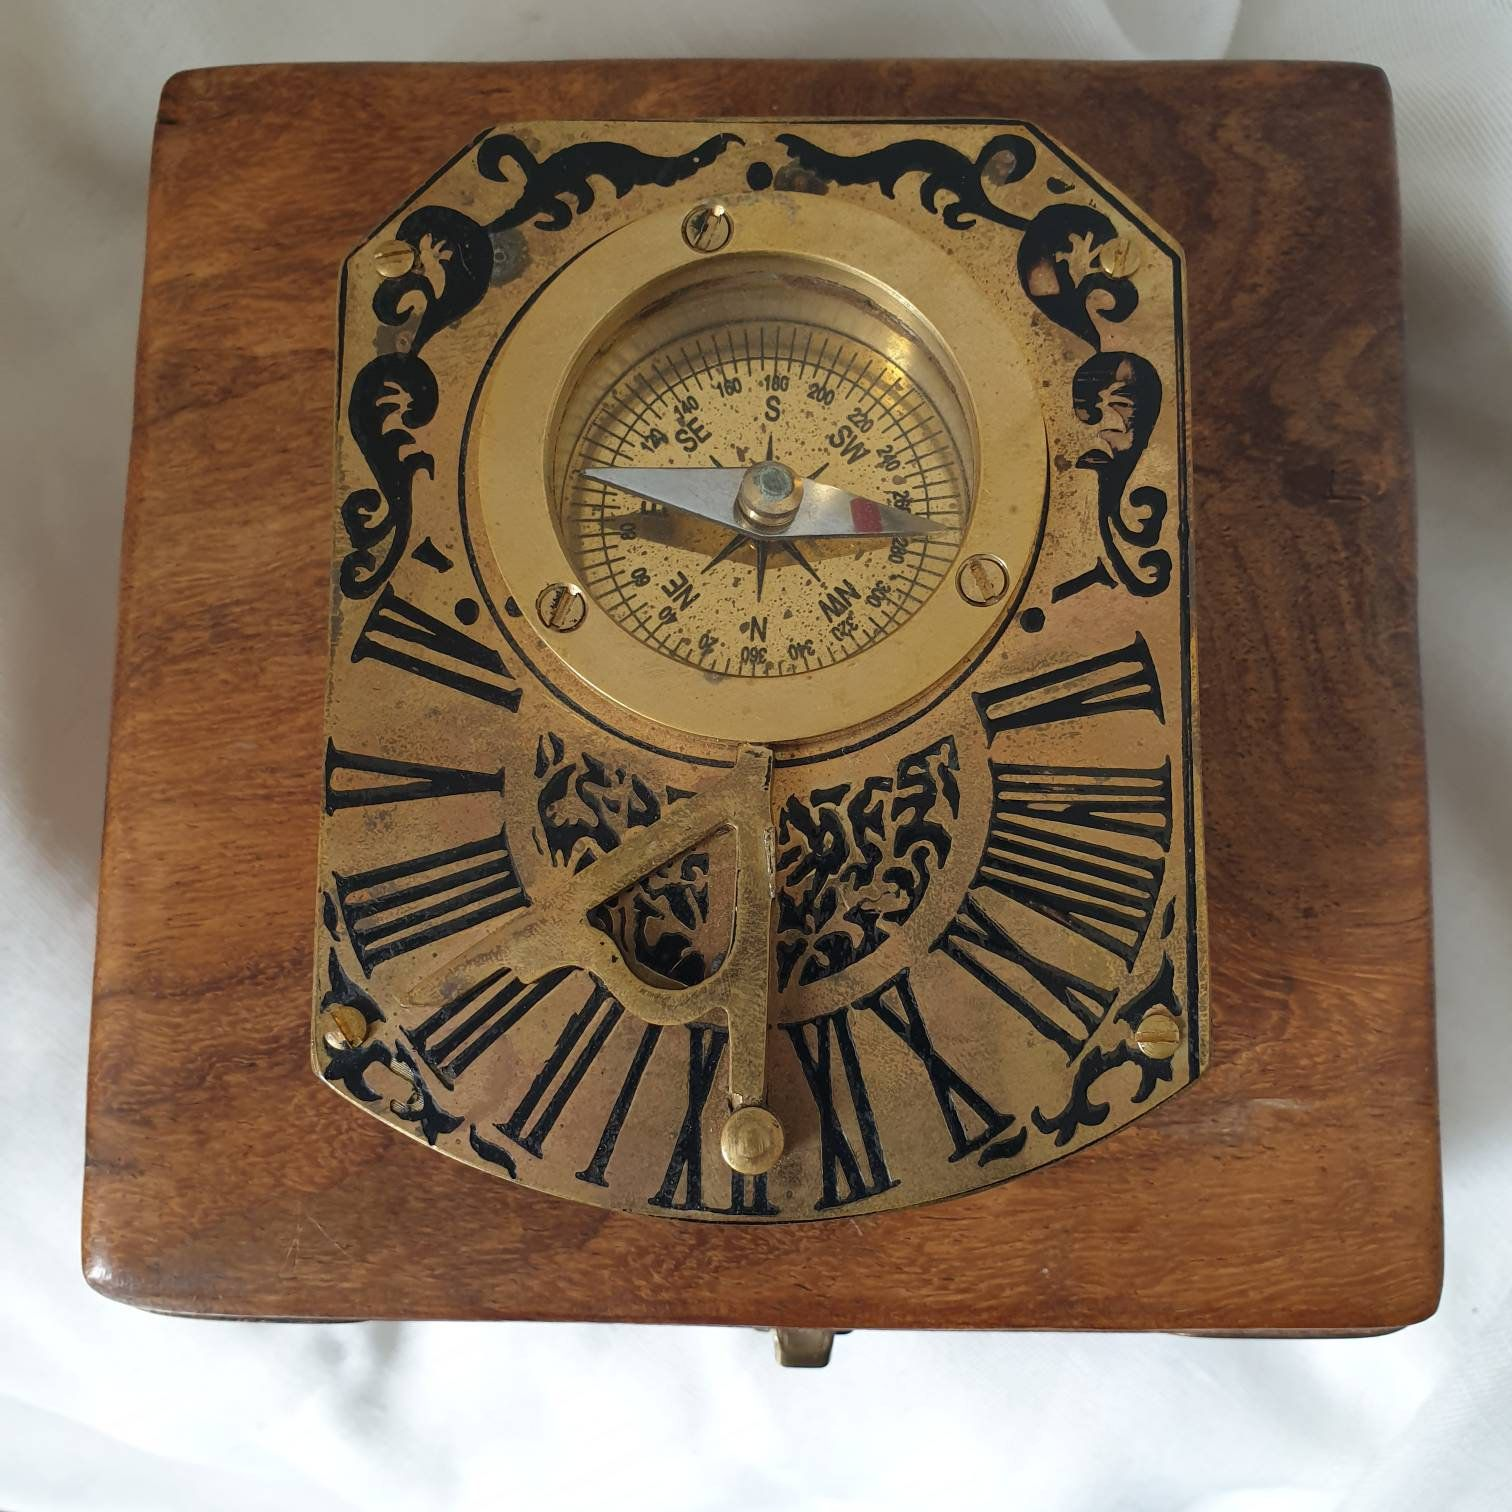 Antique Brass Sundial Compass With Antique Box Antique Etsy In 2020 Antique Boxes Antique Wooden Boxes Antiques